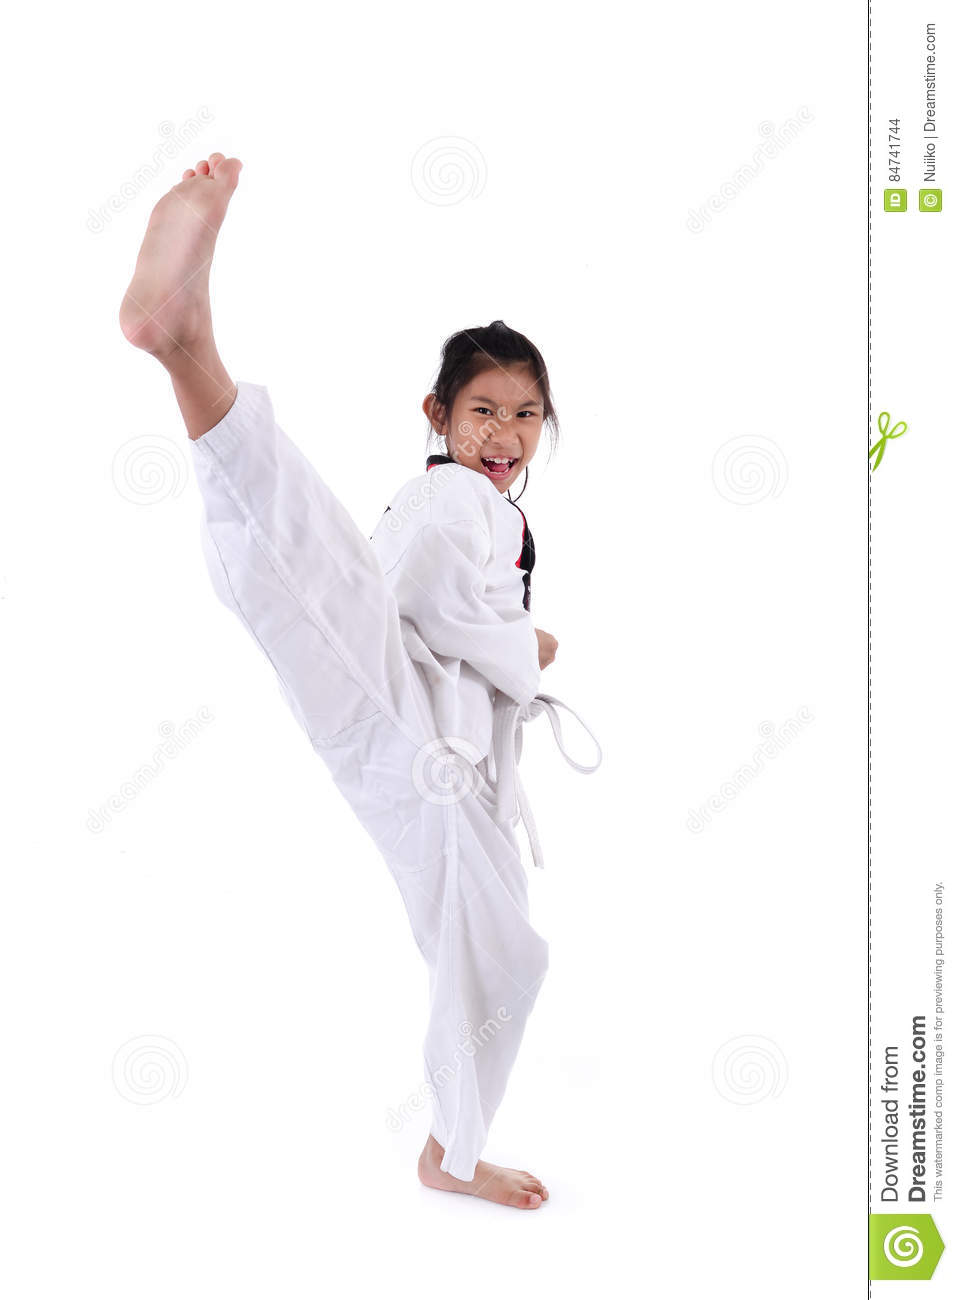 Asian girl stretching leg in martial arts practice training kick.